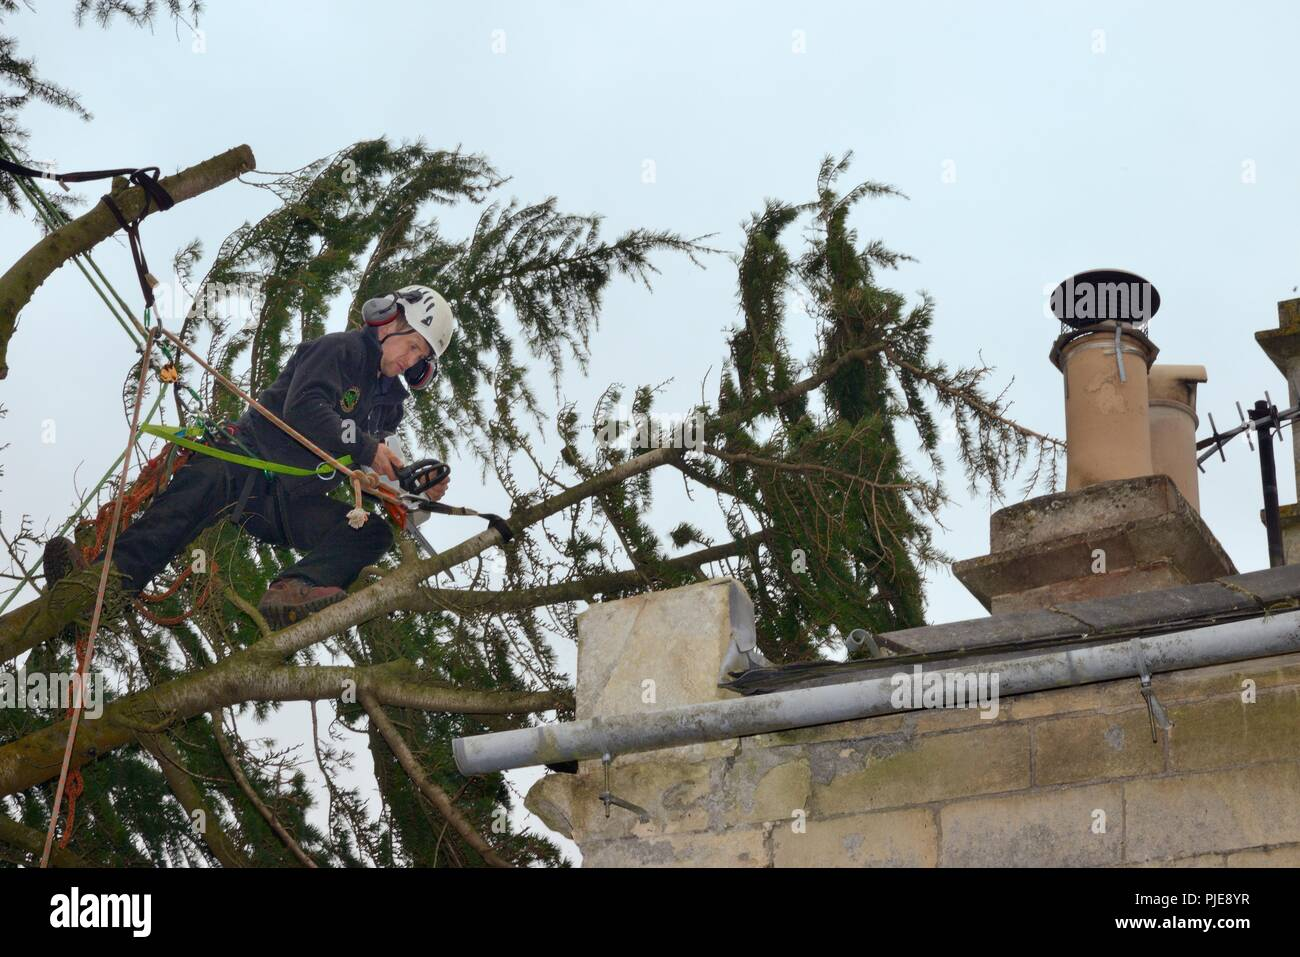 Tree surgeon cutting branches of a Deodar cedar tree blown down in a storm and overhanging  a house, Wiltshire UK, March. - Stock Image